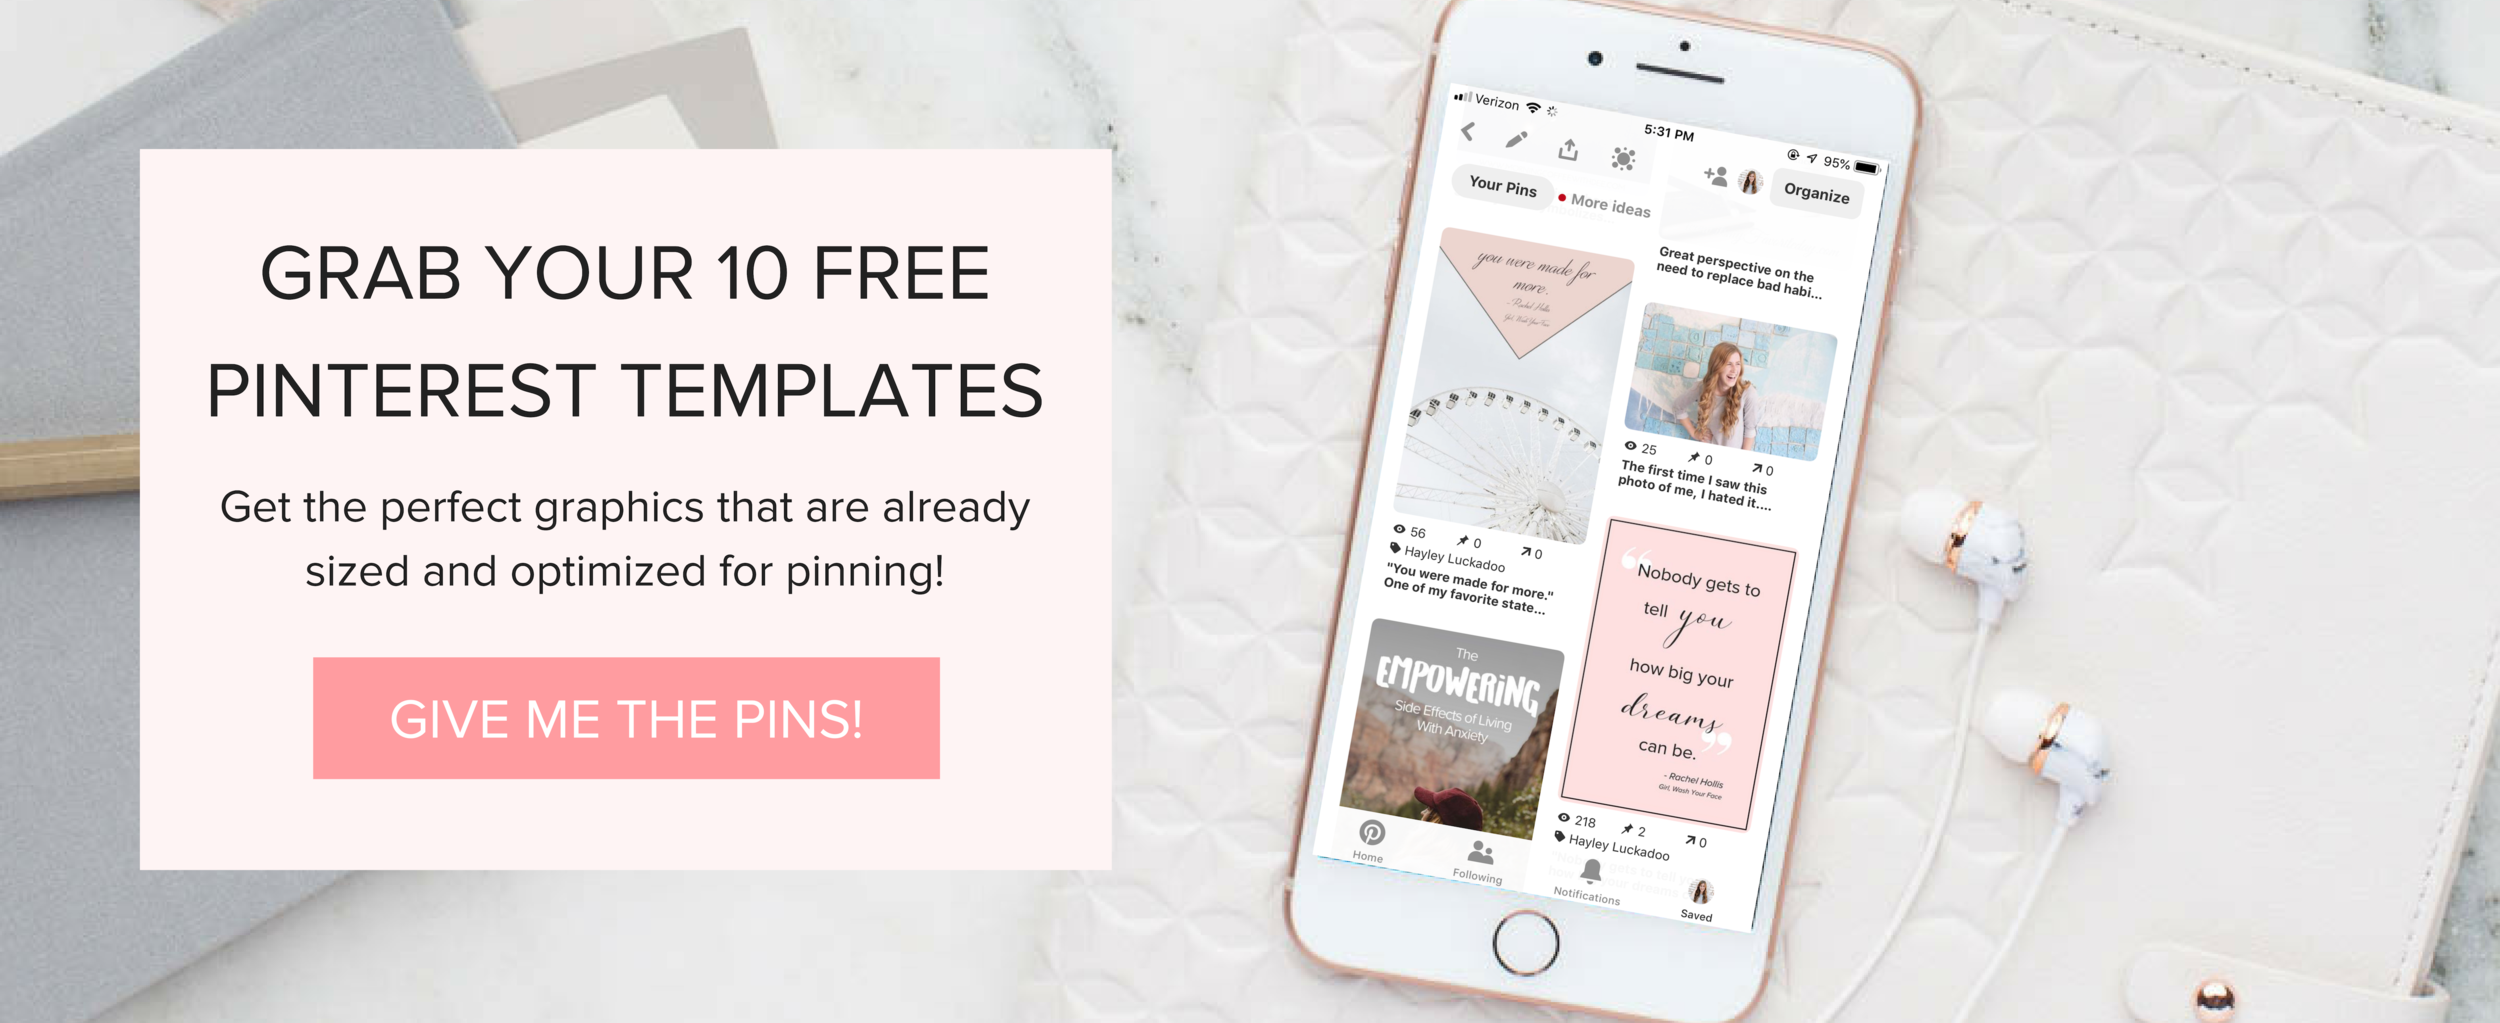 Free Pinterest Templates for your content creation